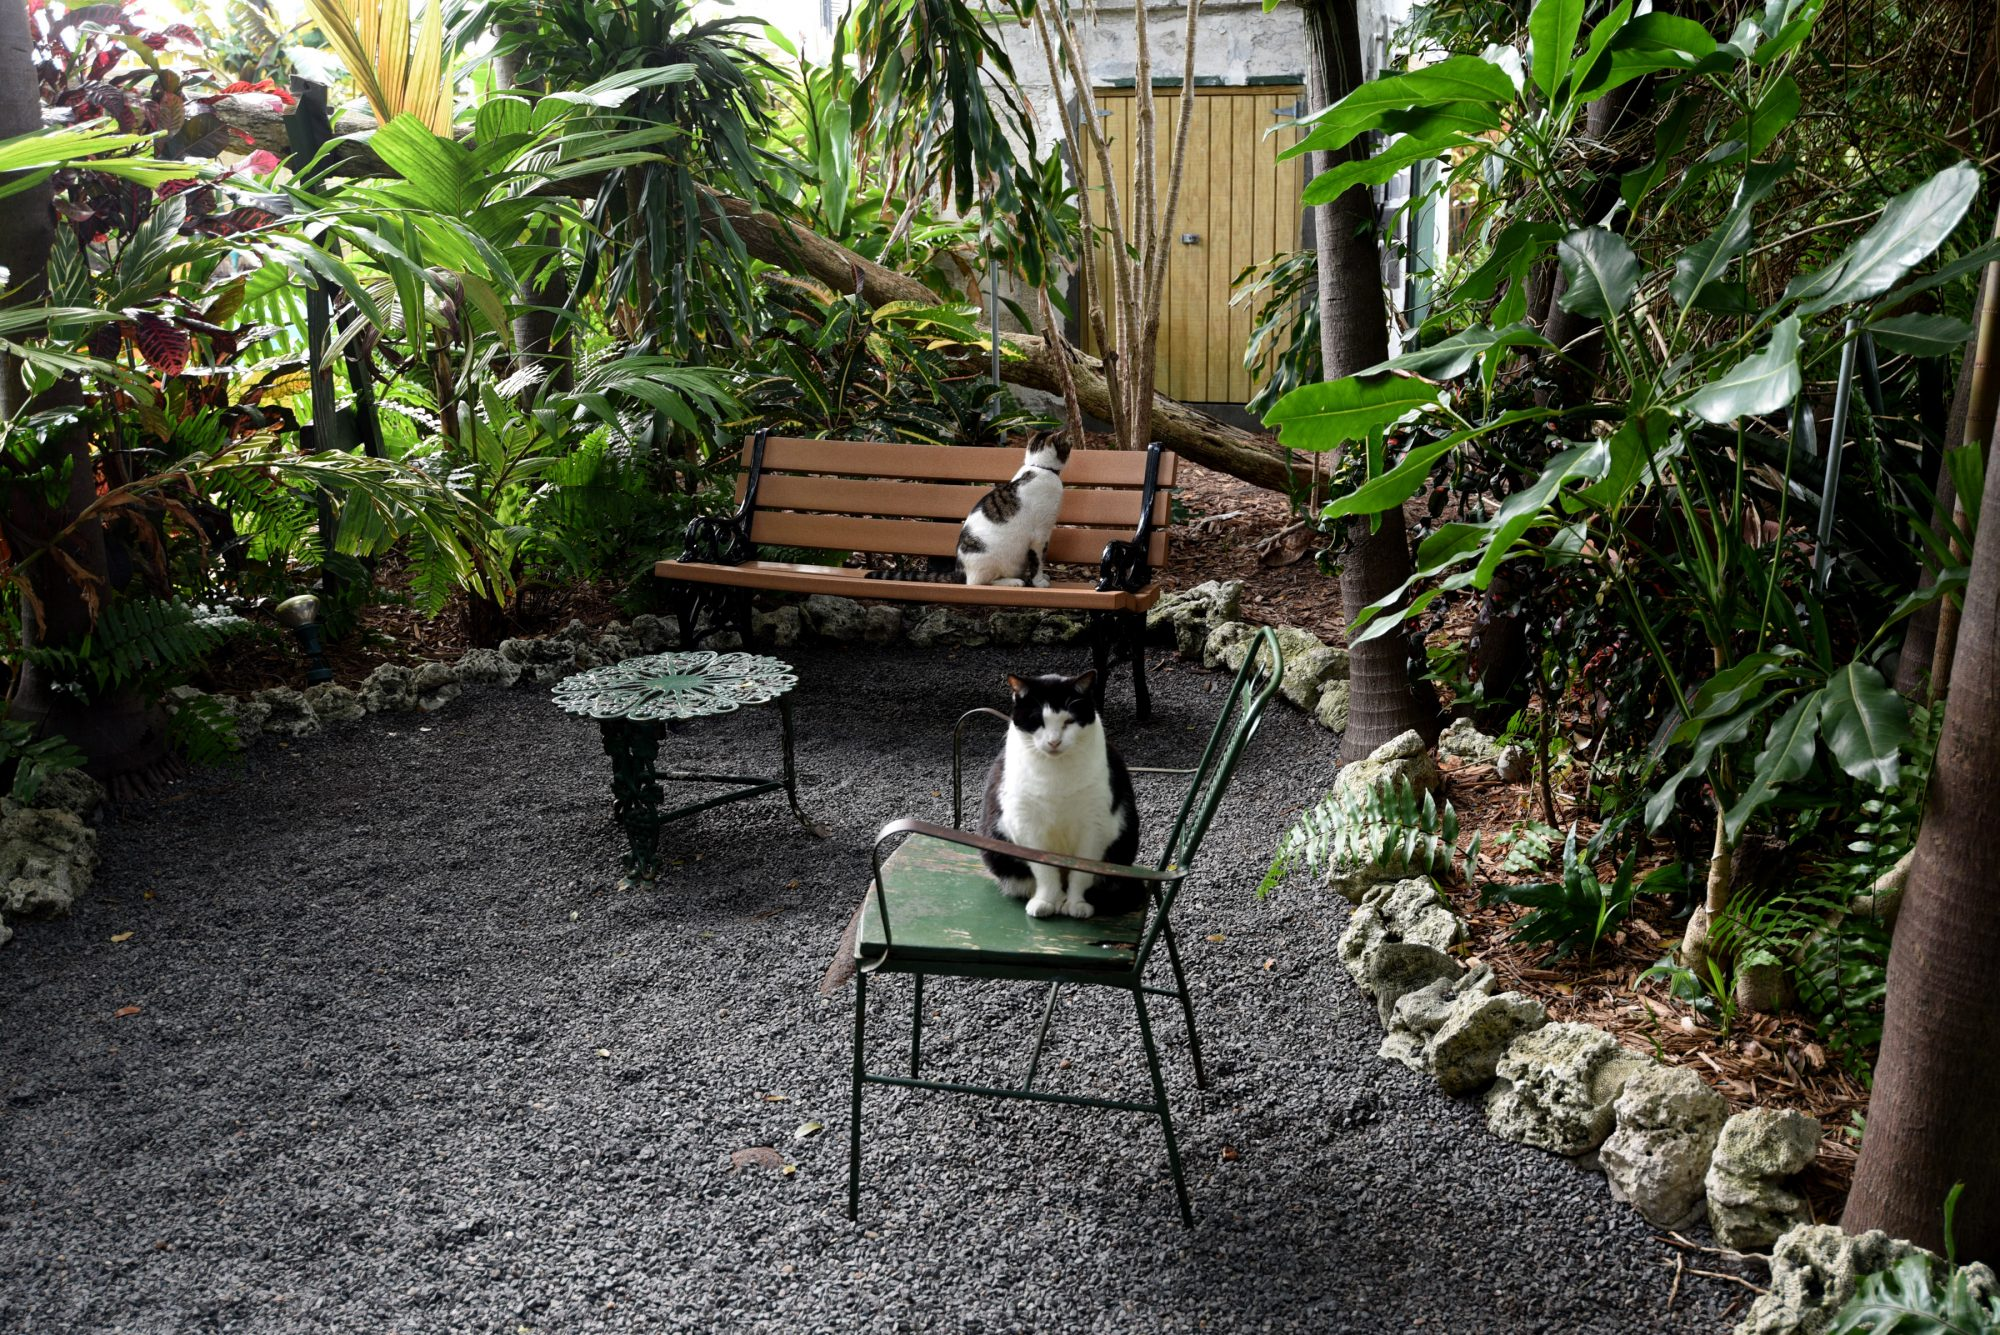 Two of the eighty polydactyl (six-toed) cats, which live in Ernest Hemingway's Home and Museum